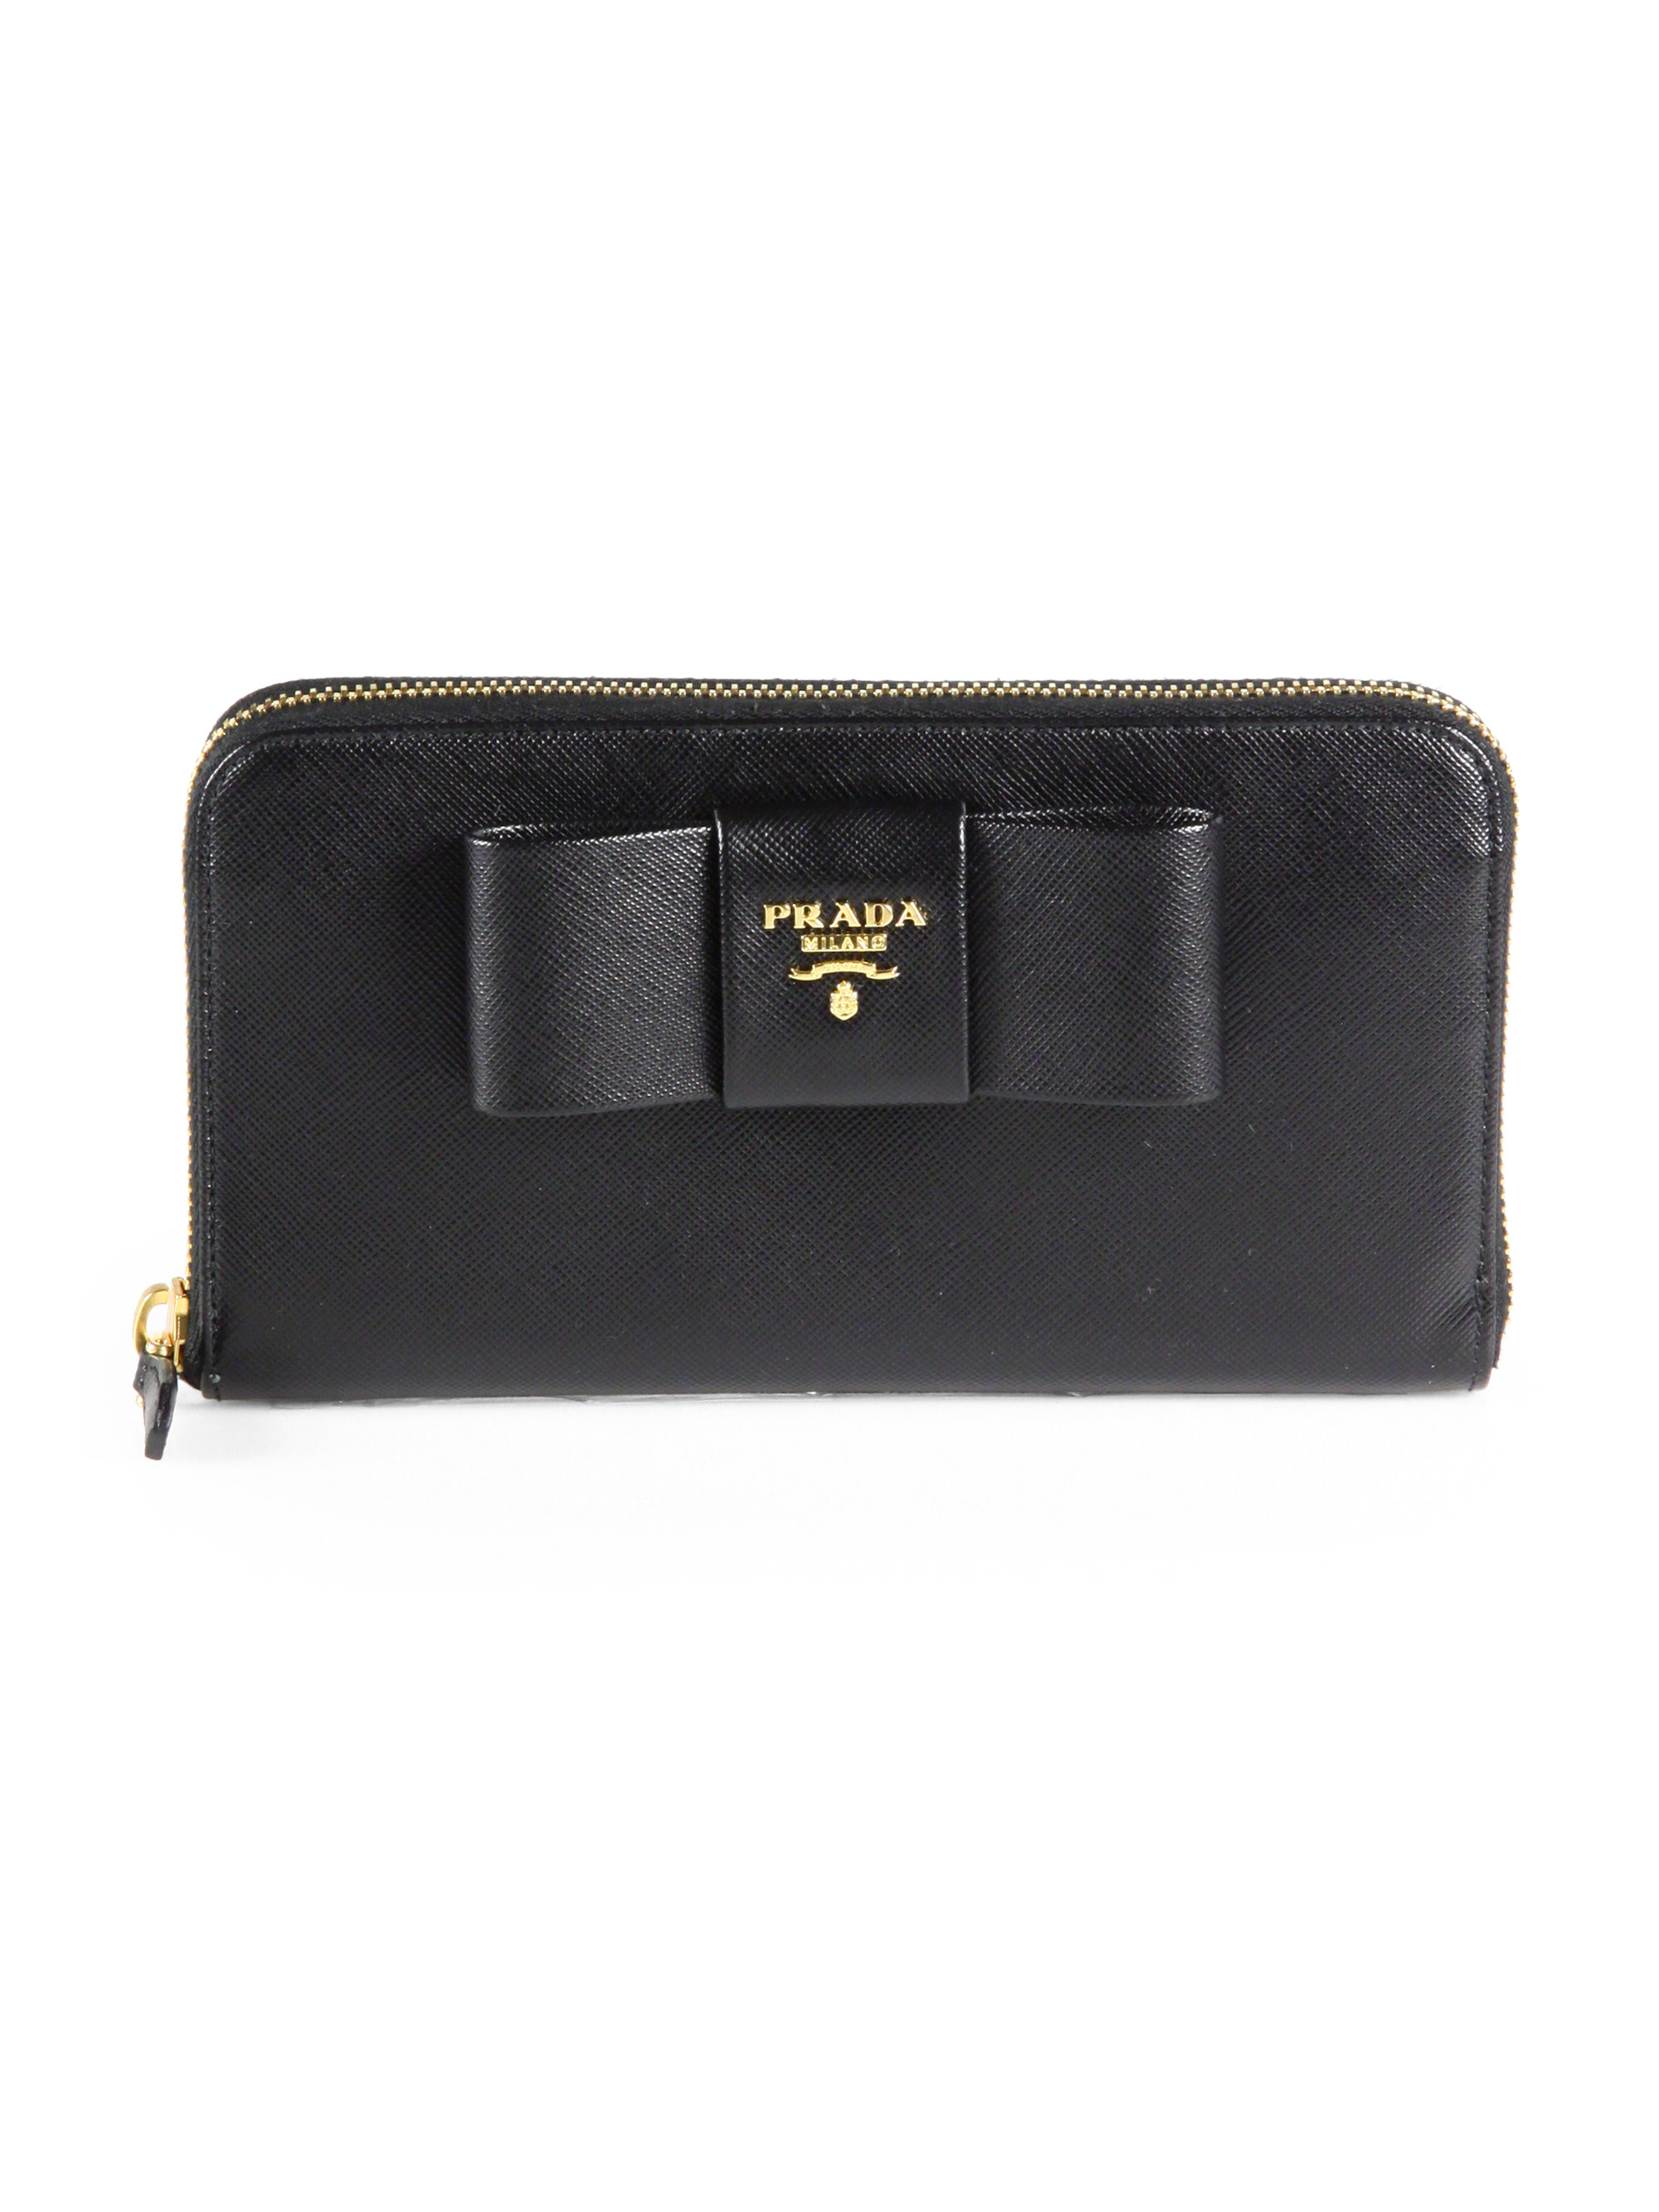 Prada Wallets | Lyst?